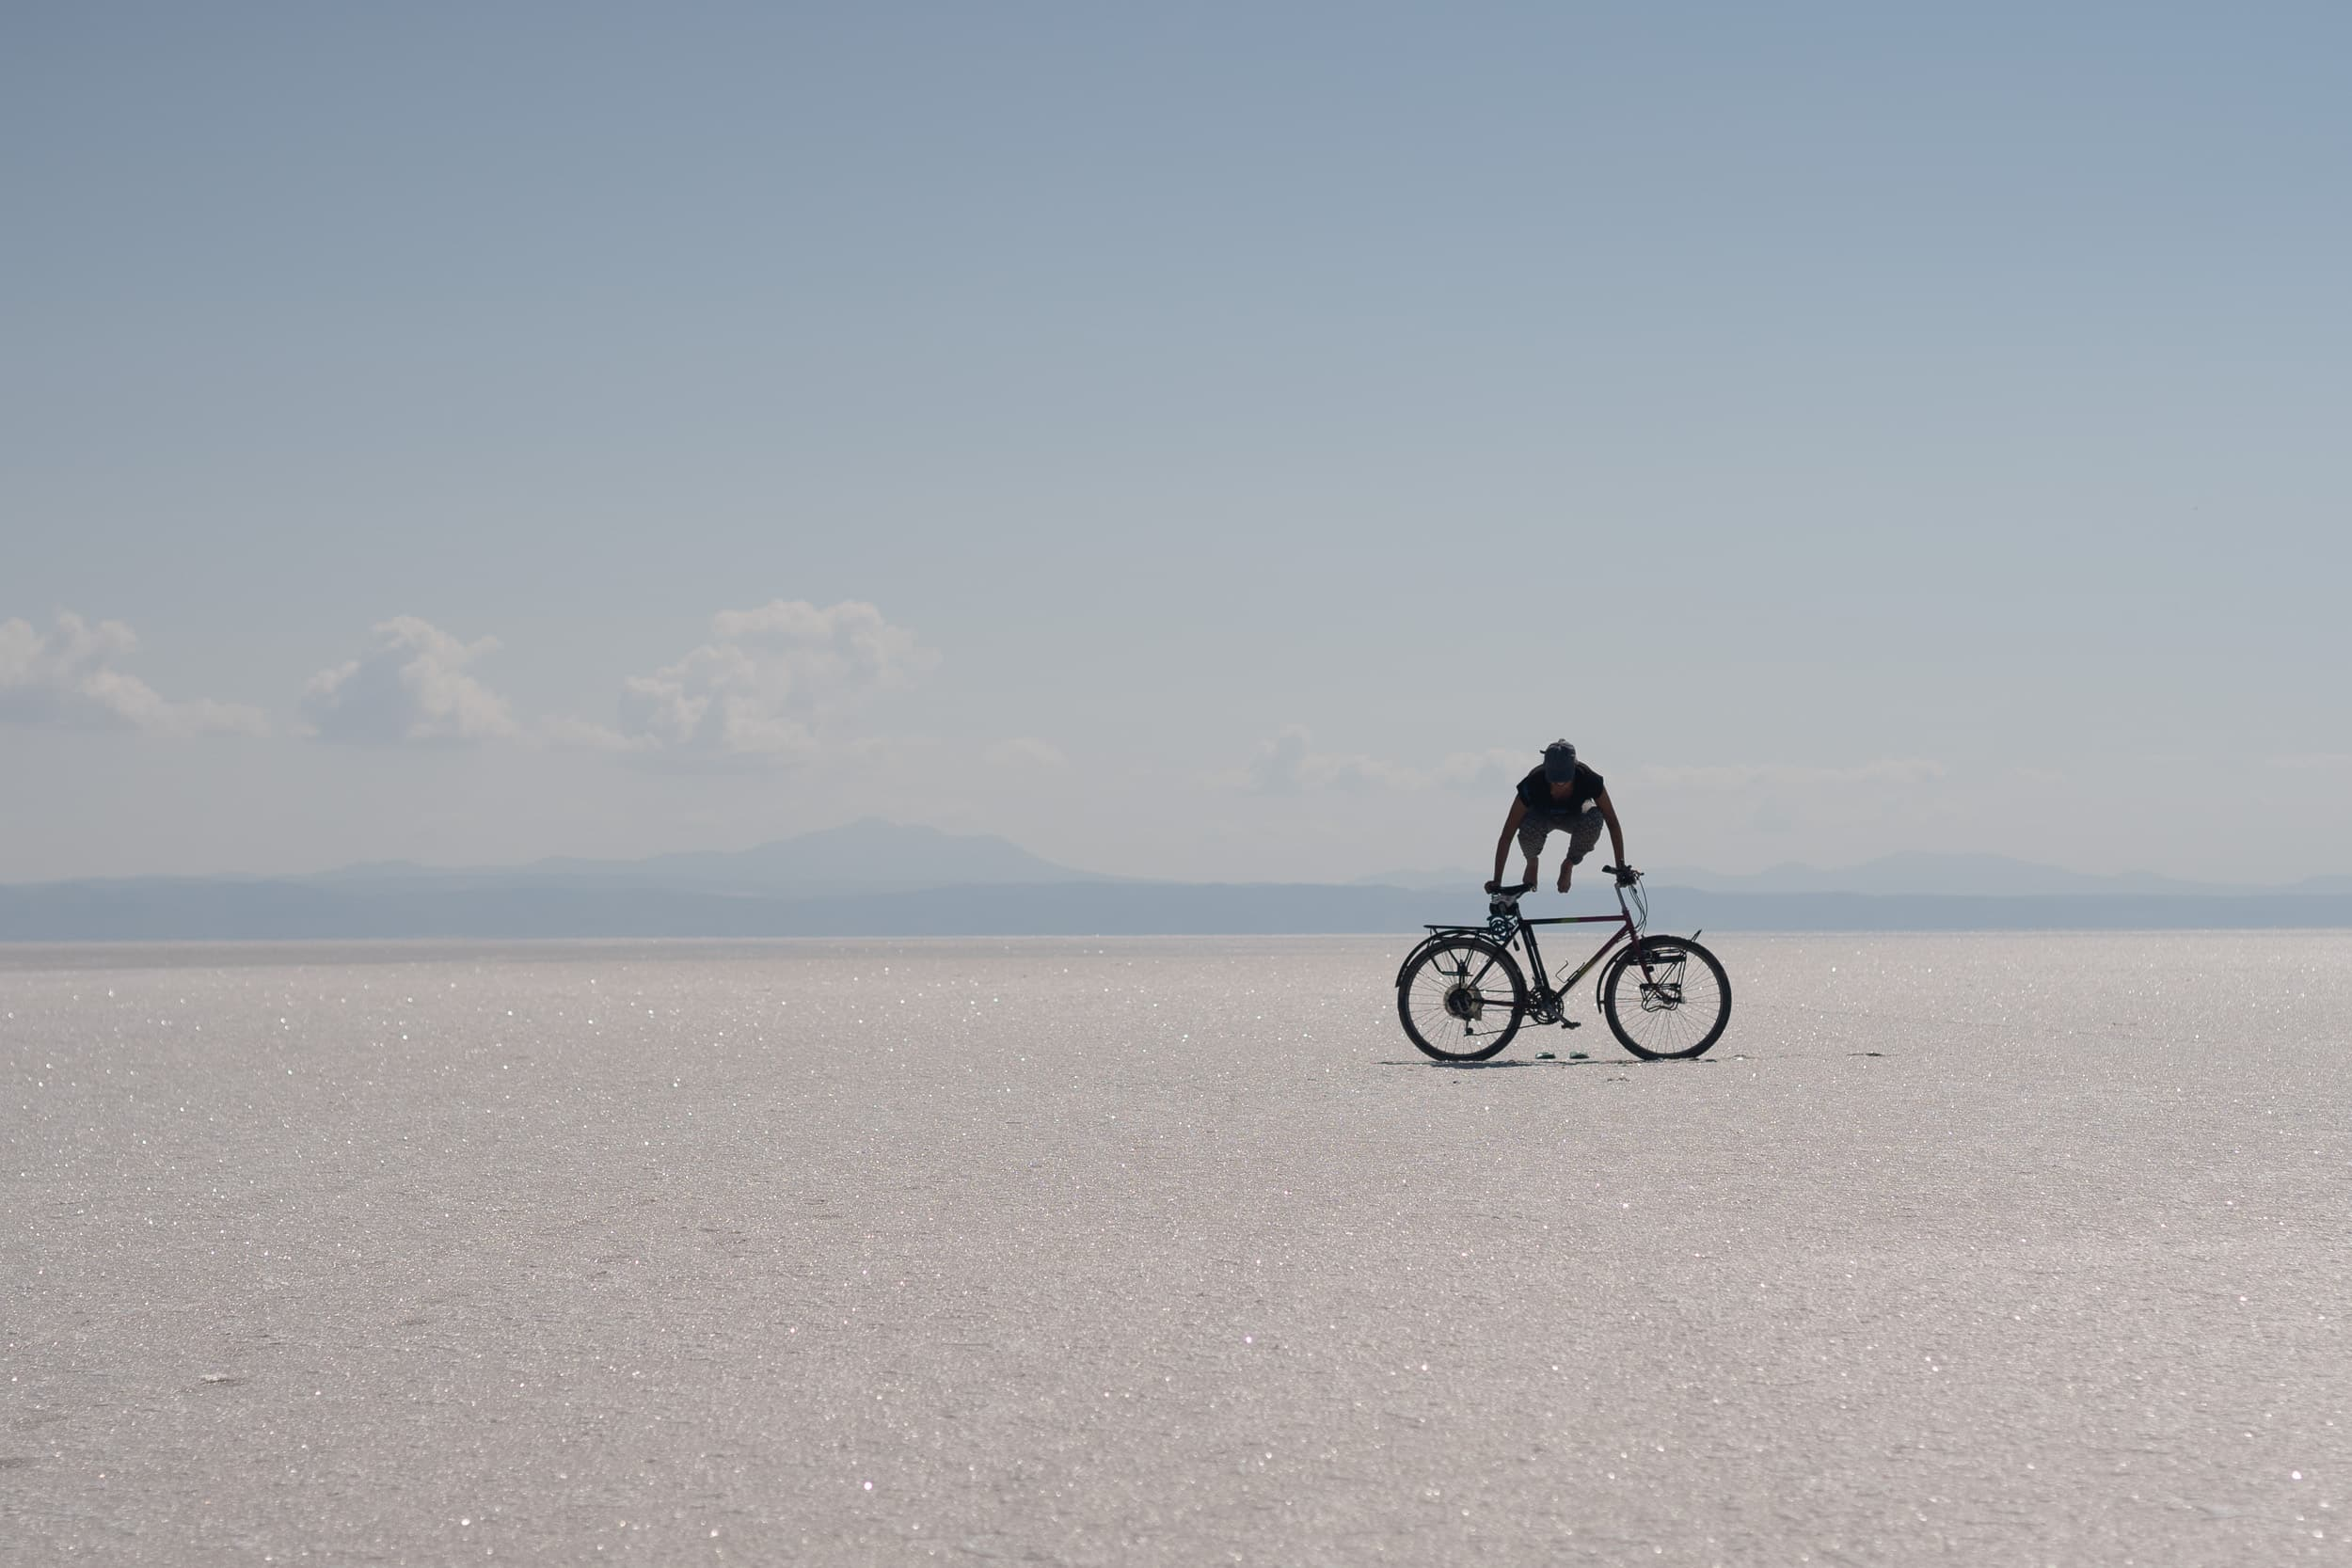 bicycle tourer on Tuzla Gölü salt lake in Turkey